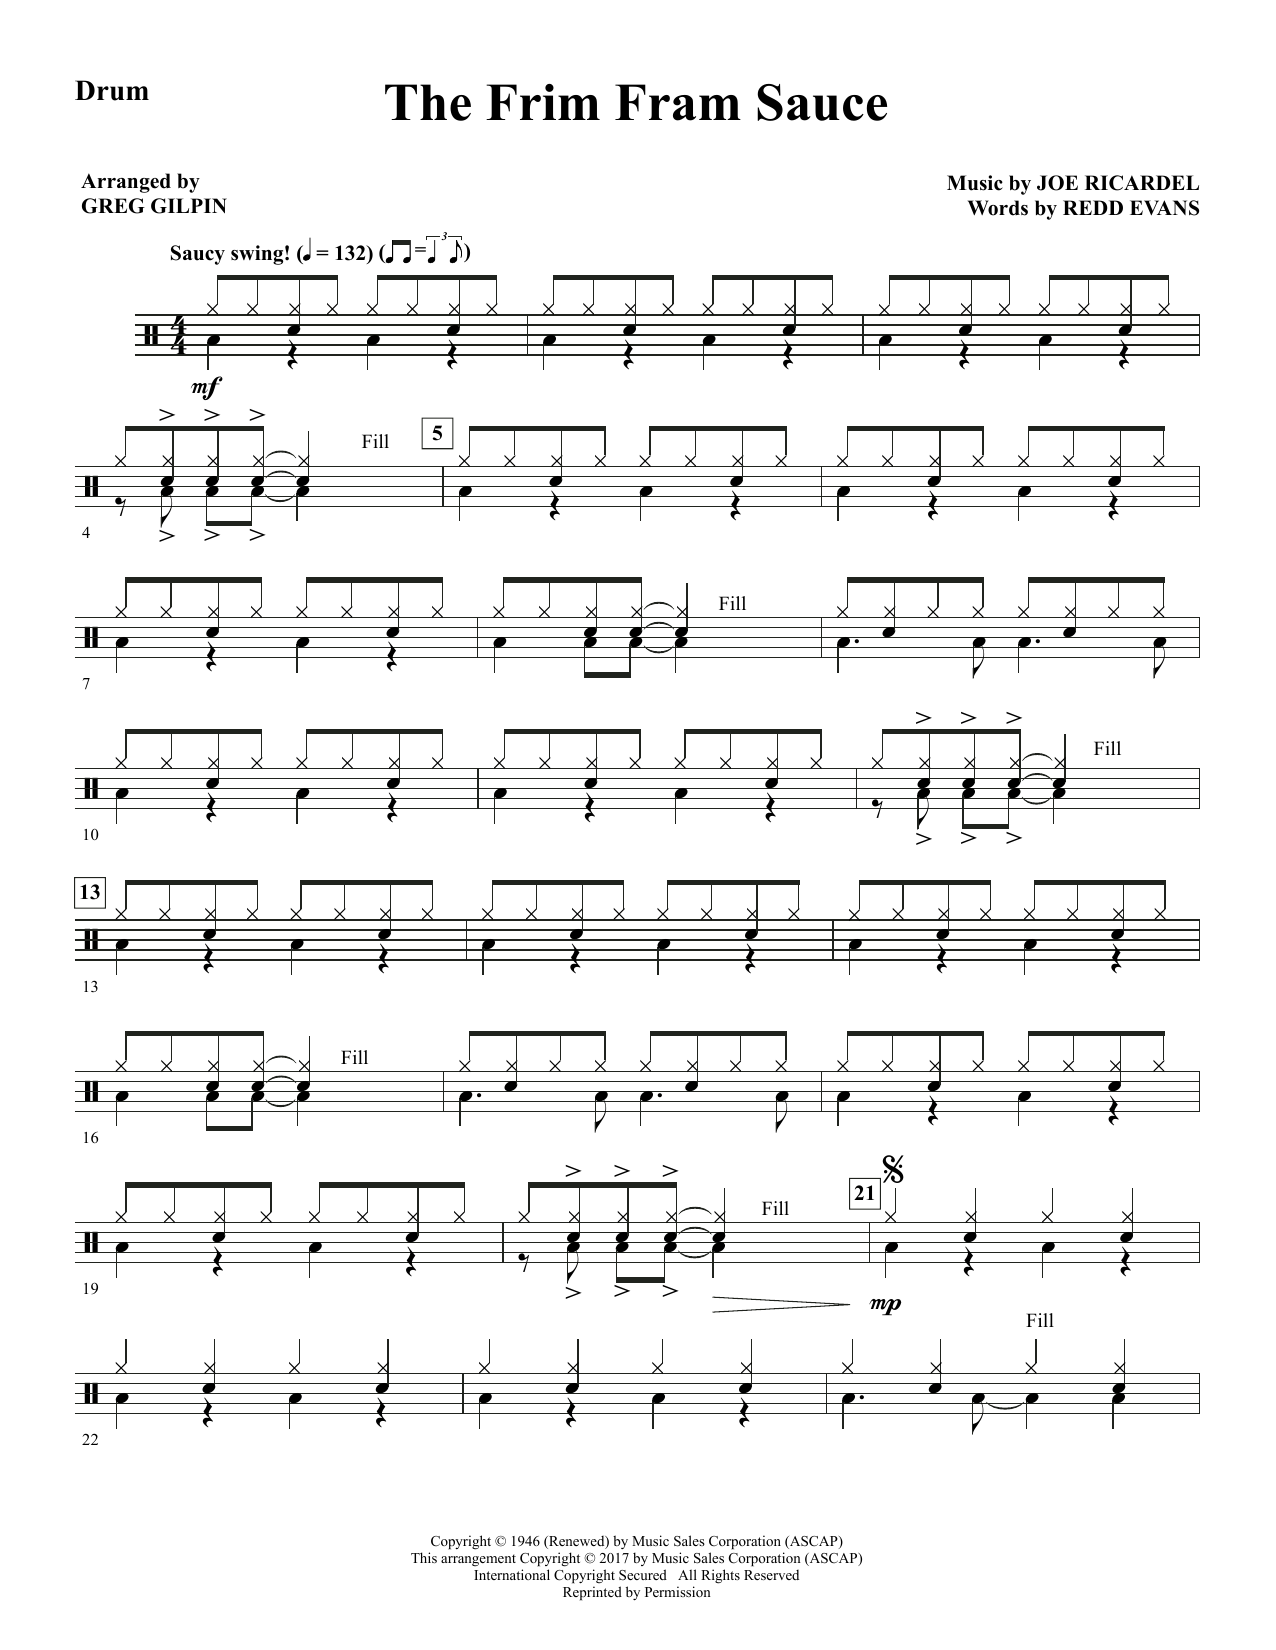 Greg Gilpin The Frim Fram Sauce - Drums sheet music notes and chords. Download Printable PDF.